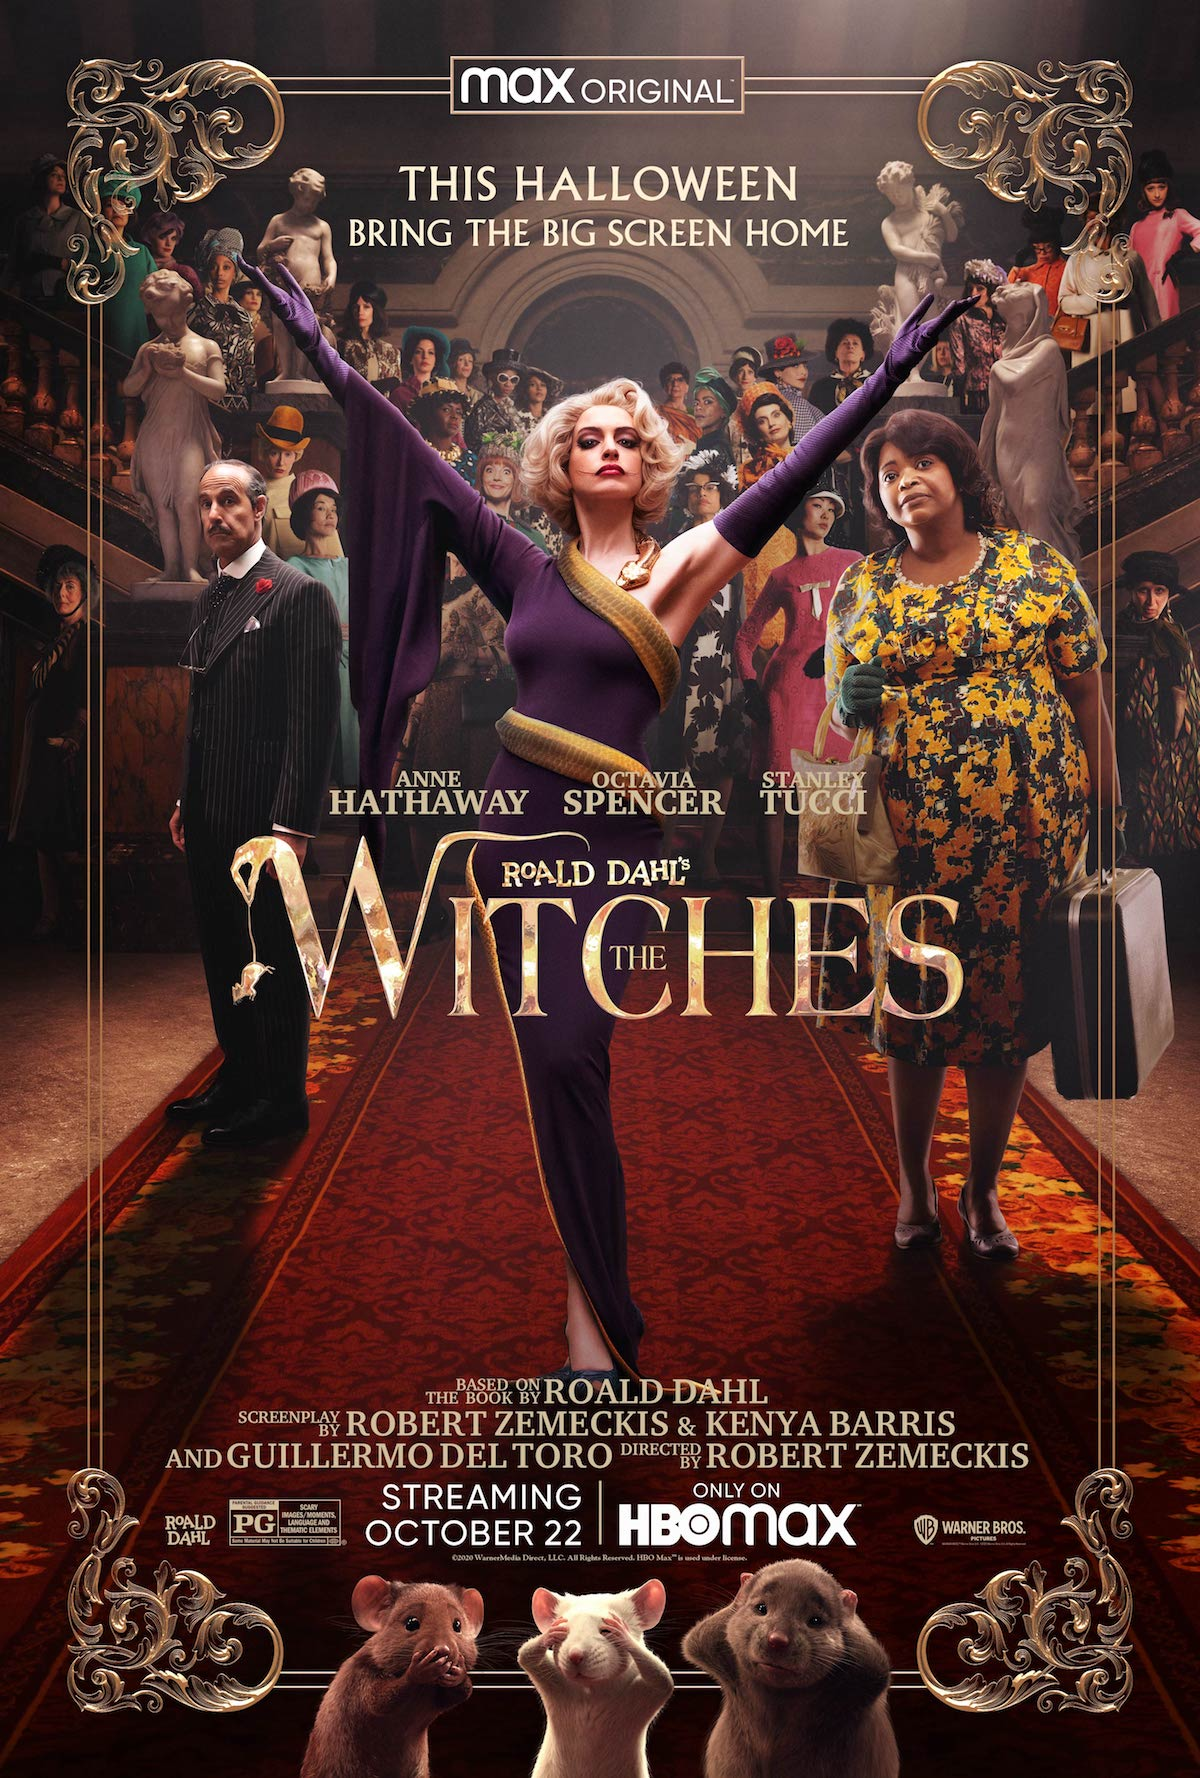 The Witches 2020 Poster Artwork